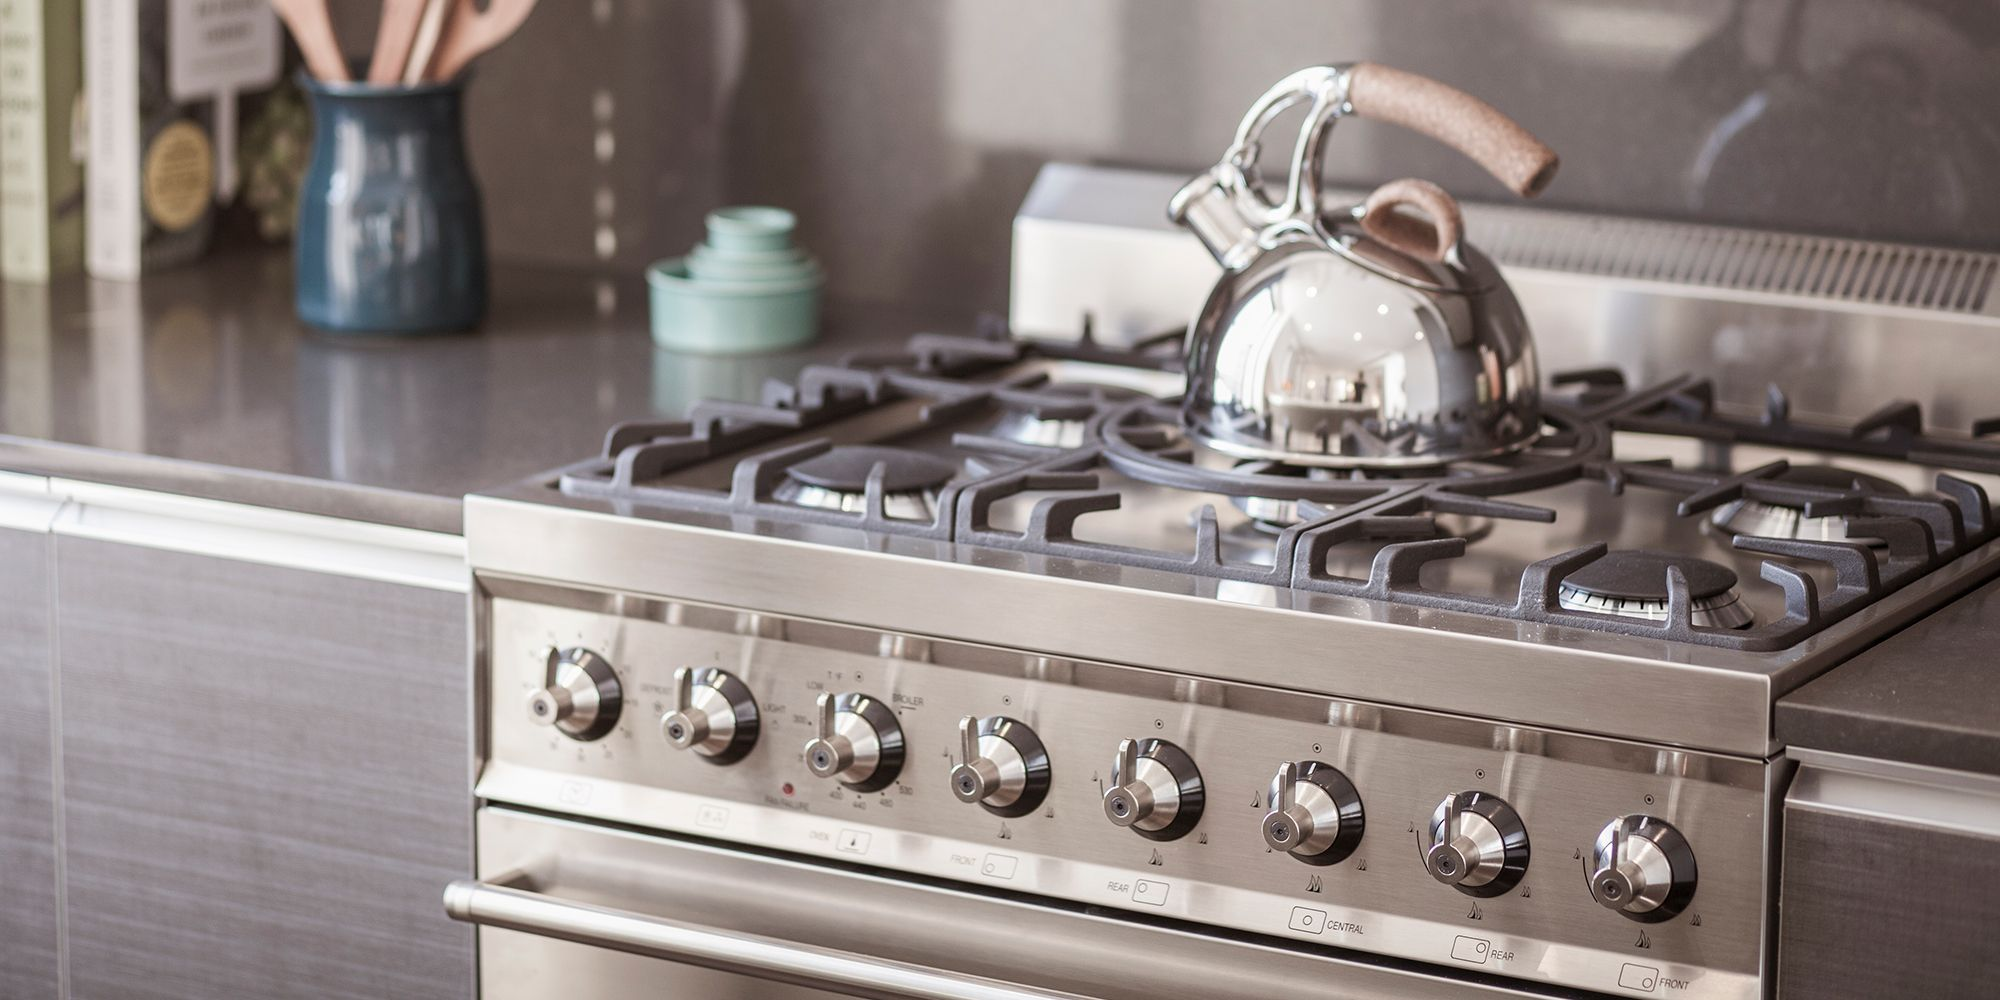 7 Best Stainless Steel Cleaners for 7 - How to Clean Stainless